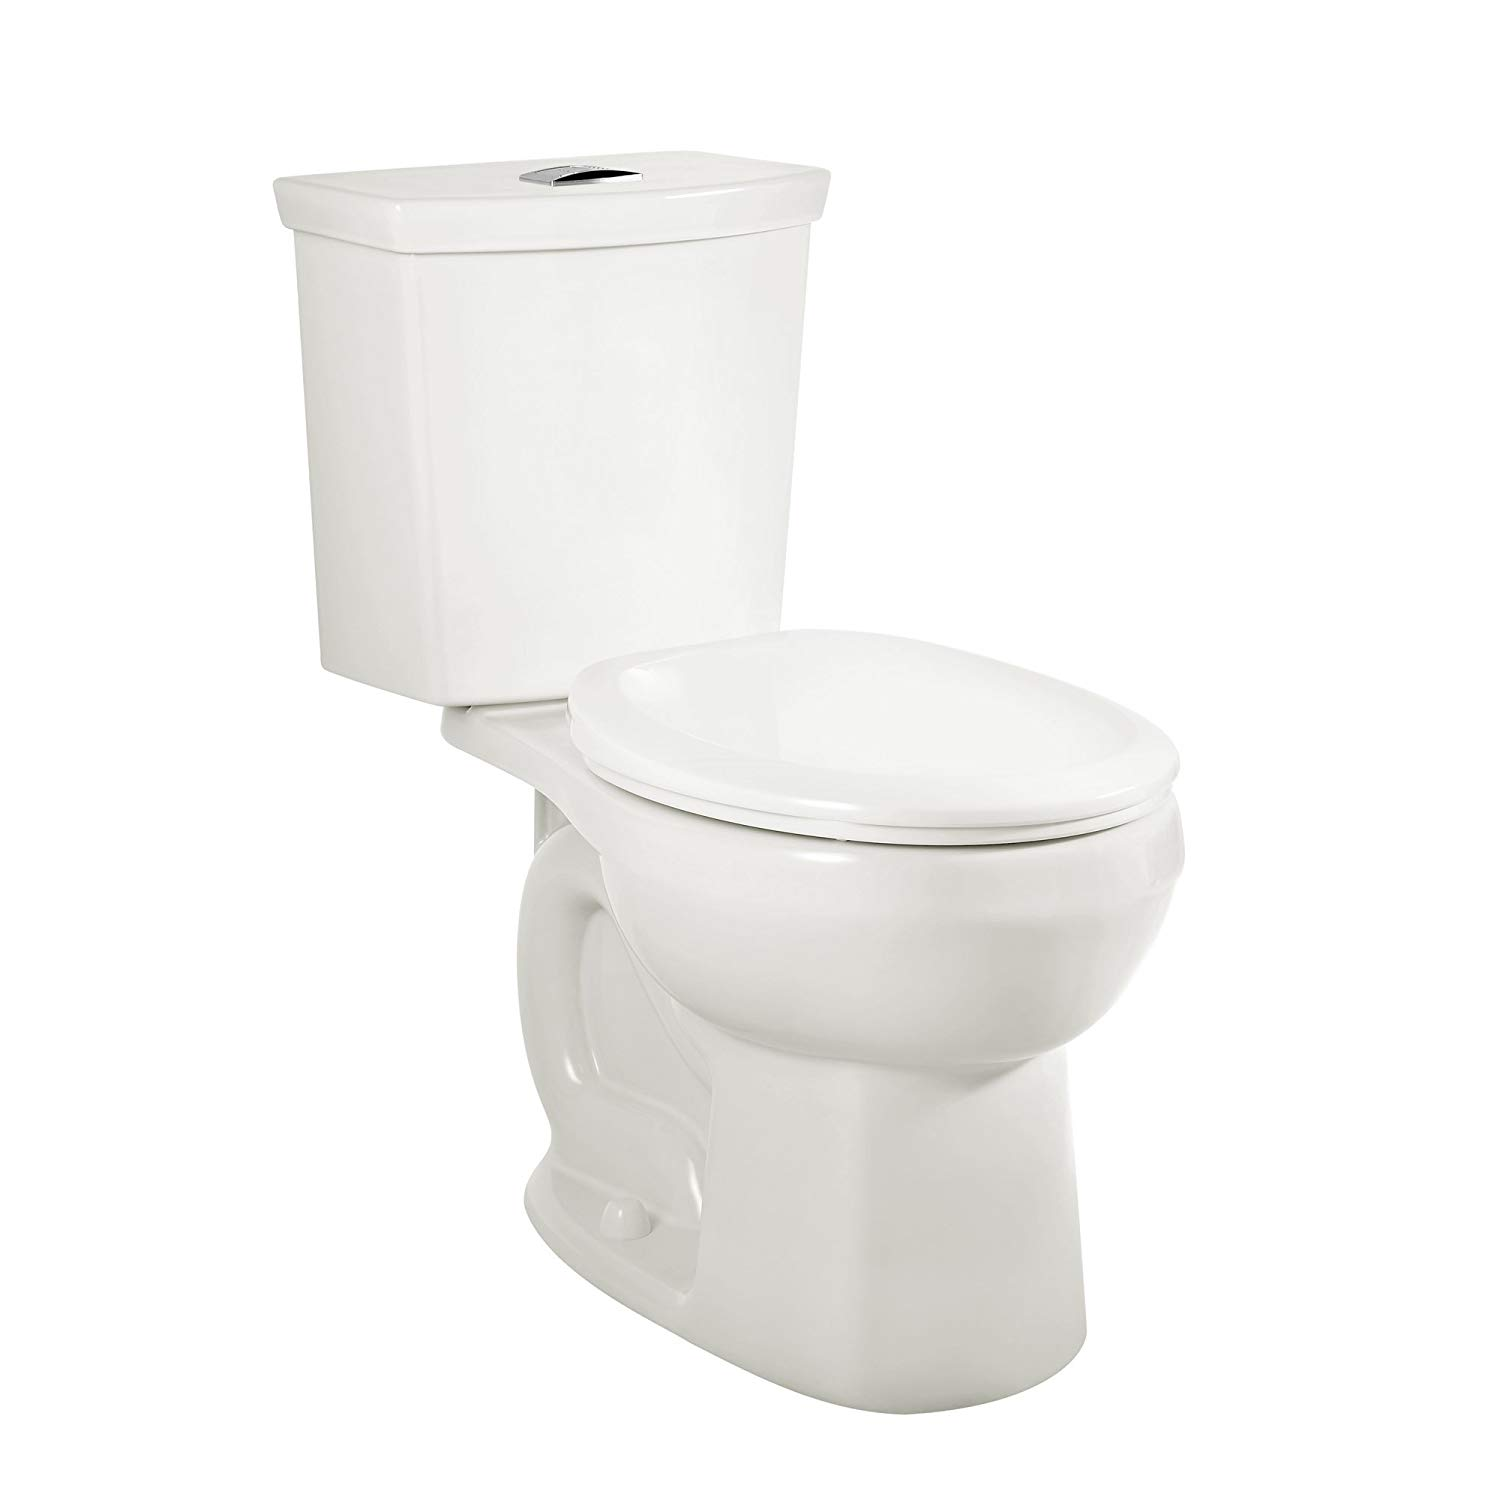 How To Find American Standard Toilet Model Number Weberguide